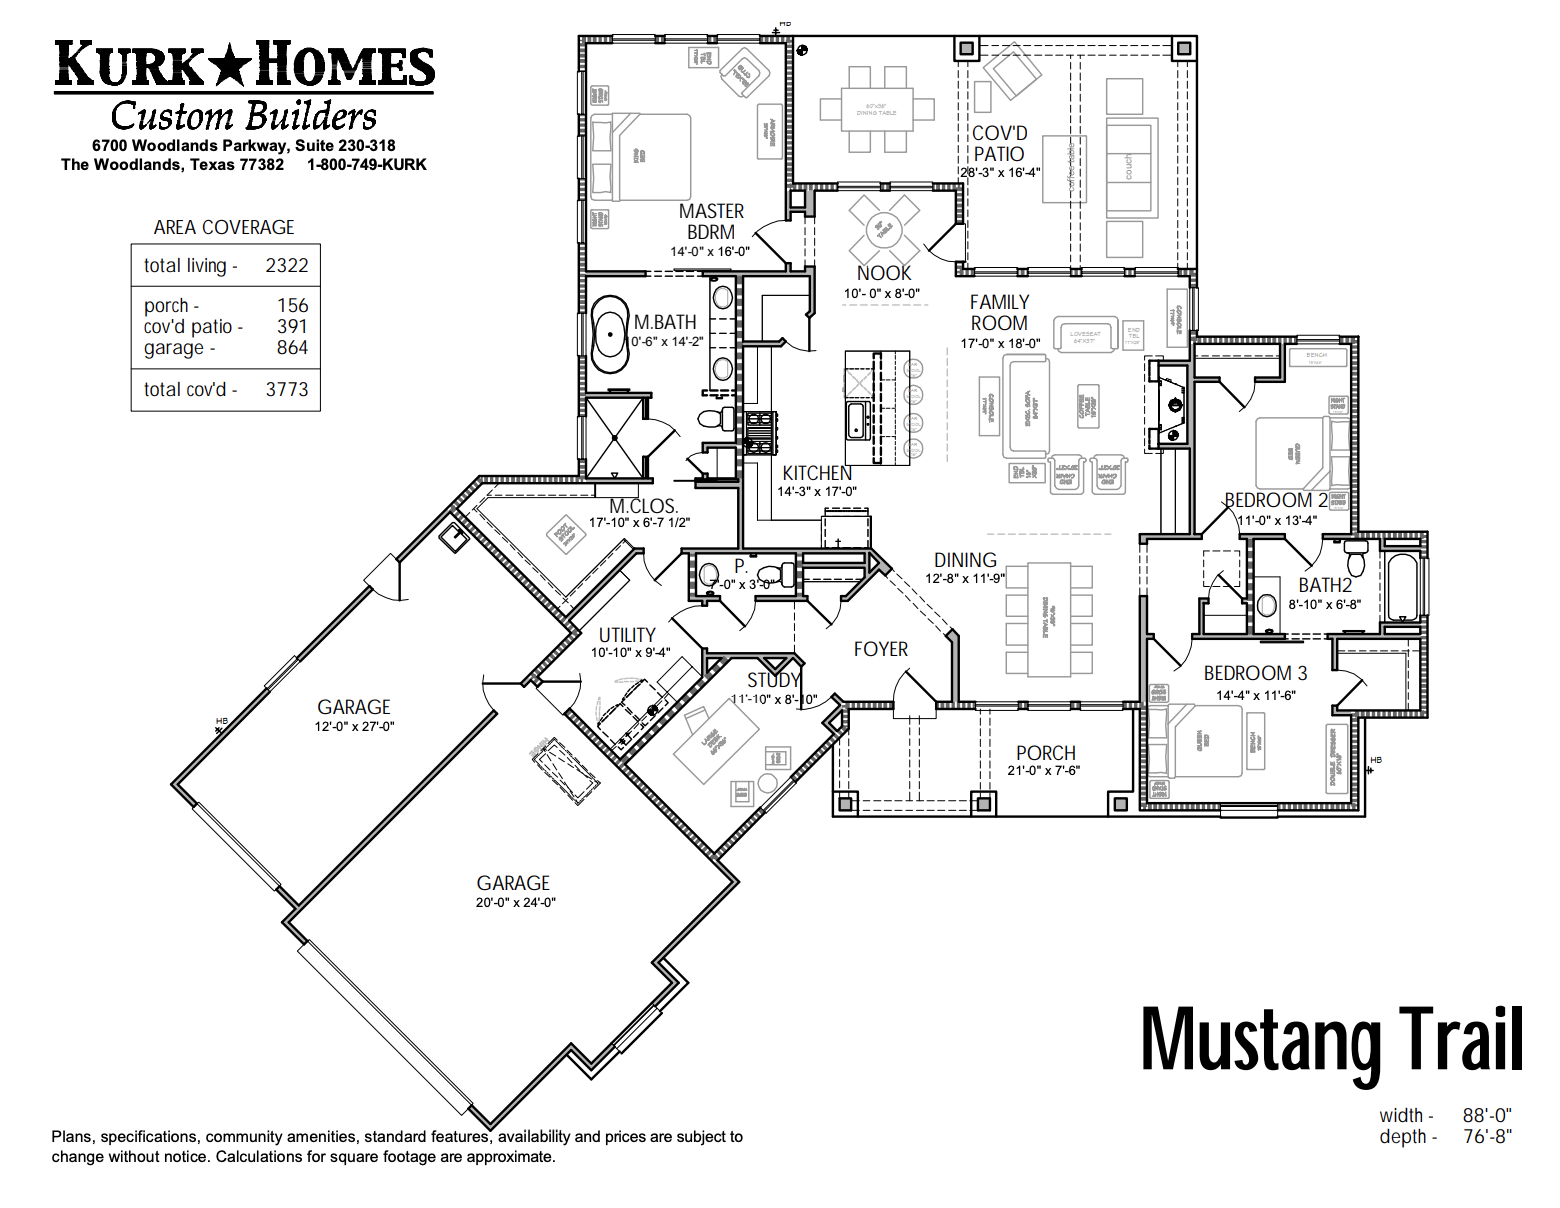 The Mustang Trail - Home Plan Design